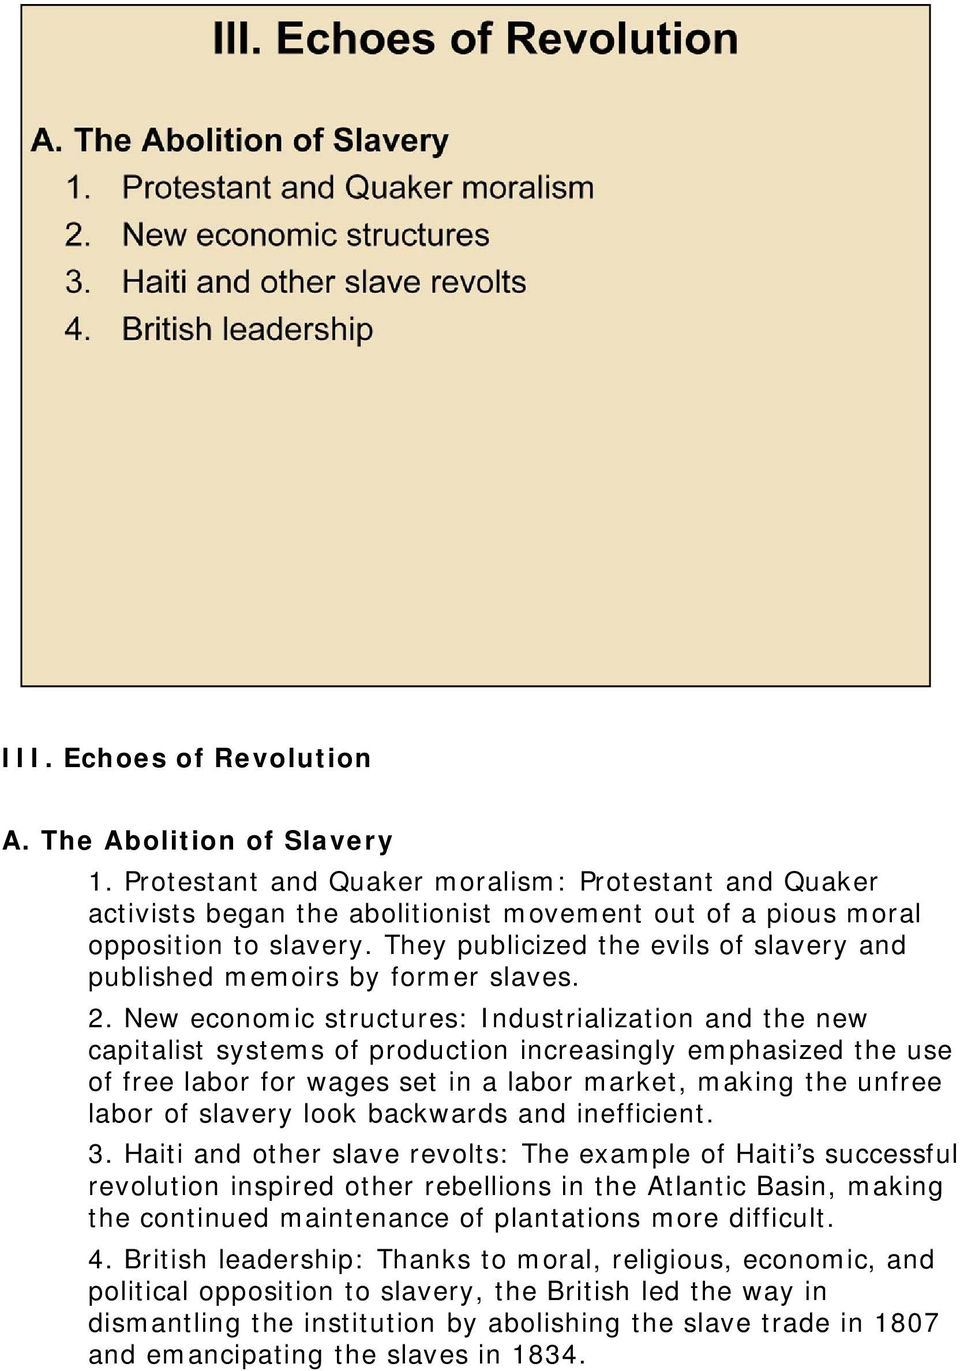 a look at slavery as a social and economic institution Seven lies, half-truths, and irrelevancies people trot out  of economic and social  and expansion of slavery the institution was protected in.